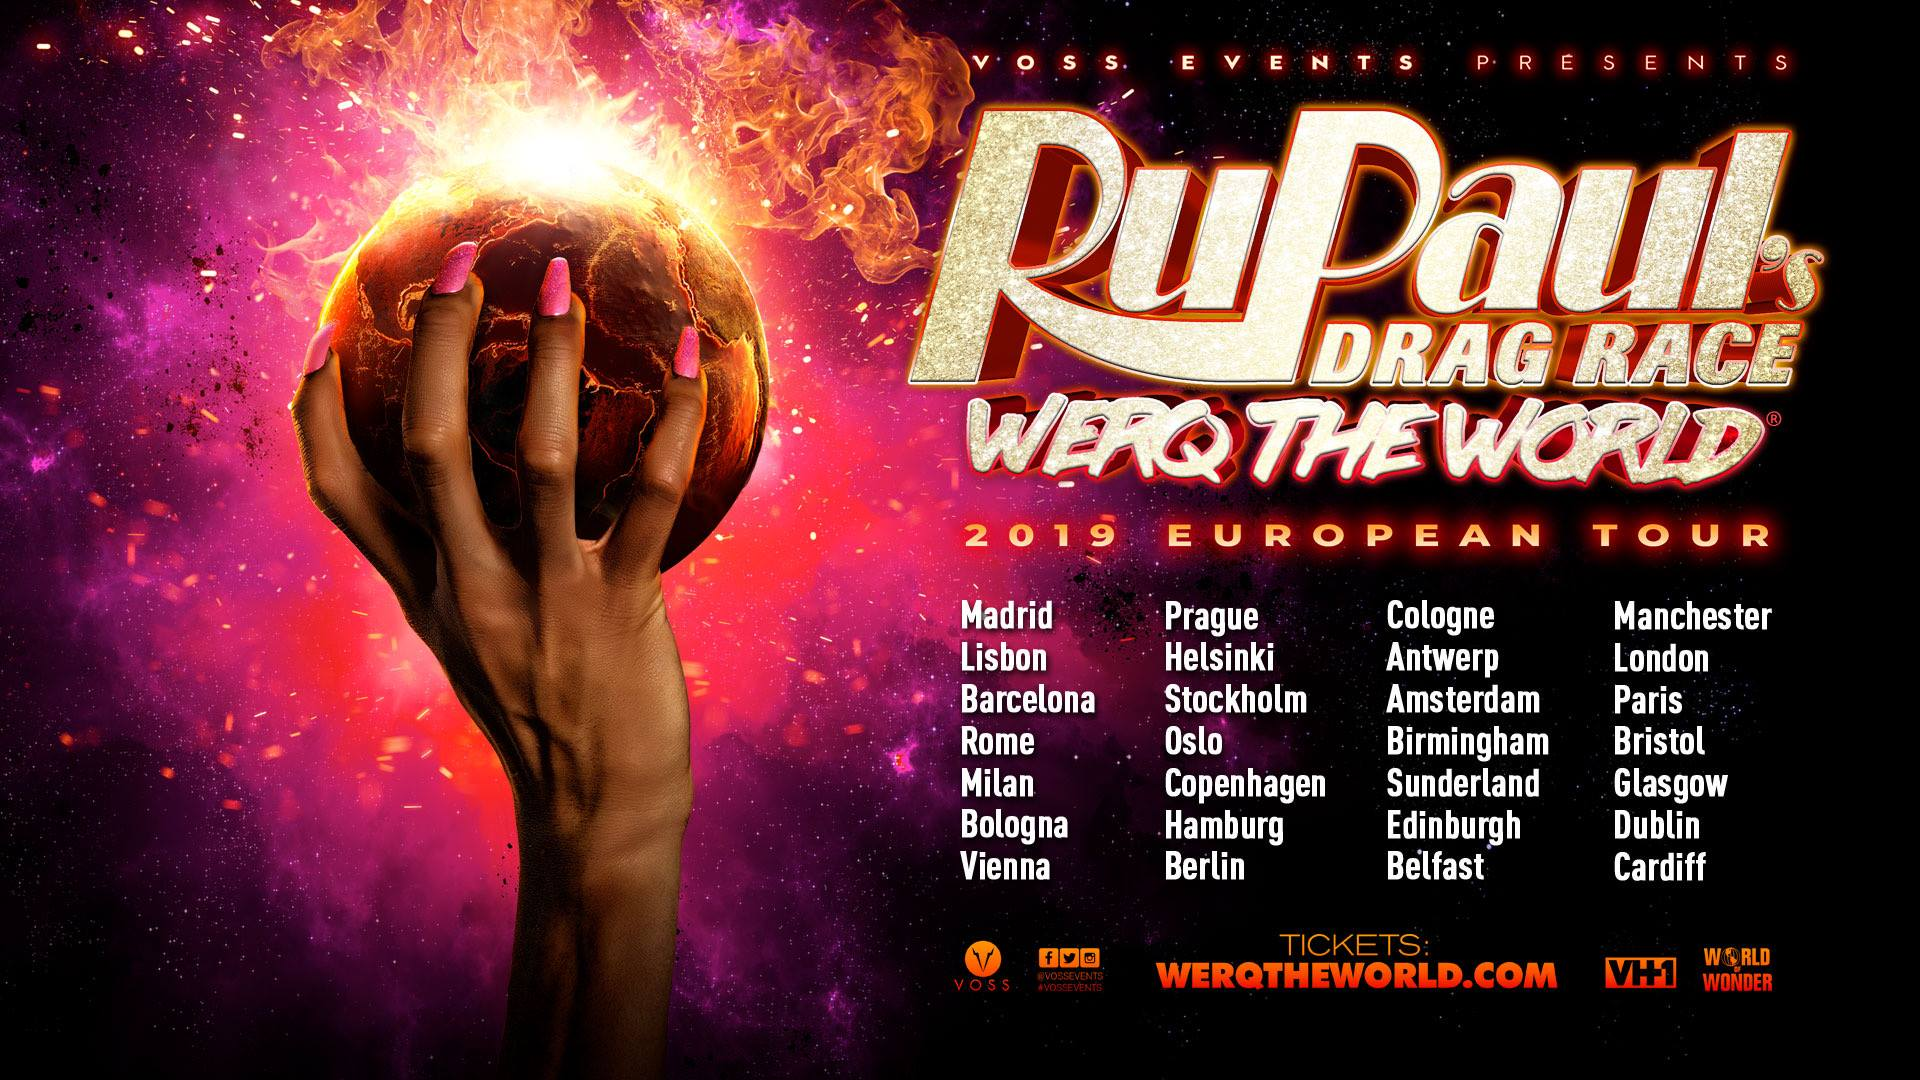 Werq The World Tour 2019 RuPaul's Drag Race Dragqueen Event Amsterdam